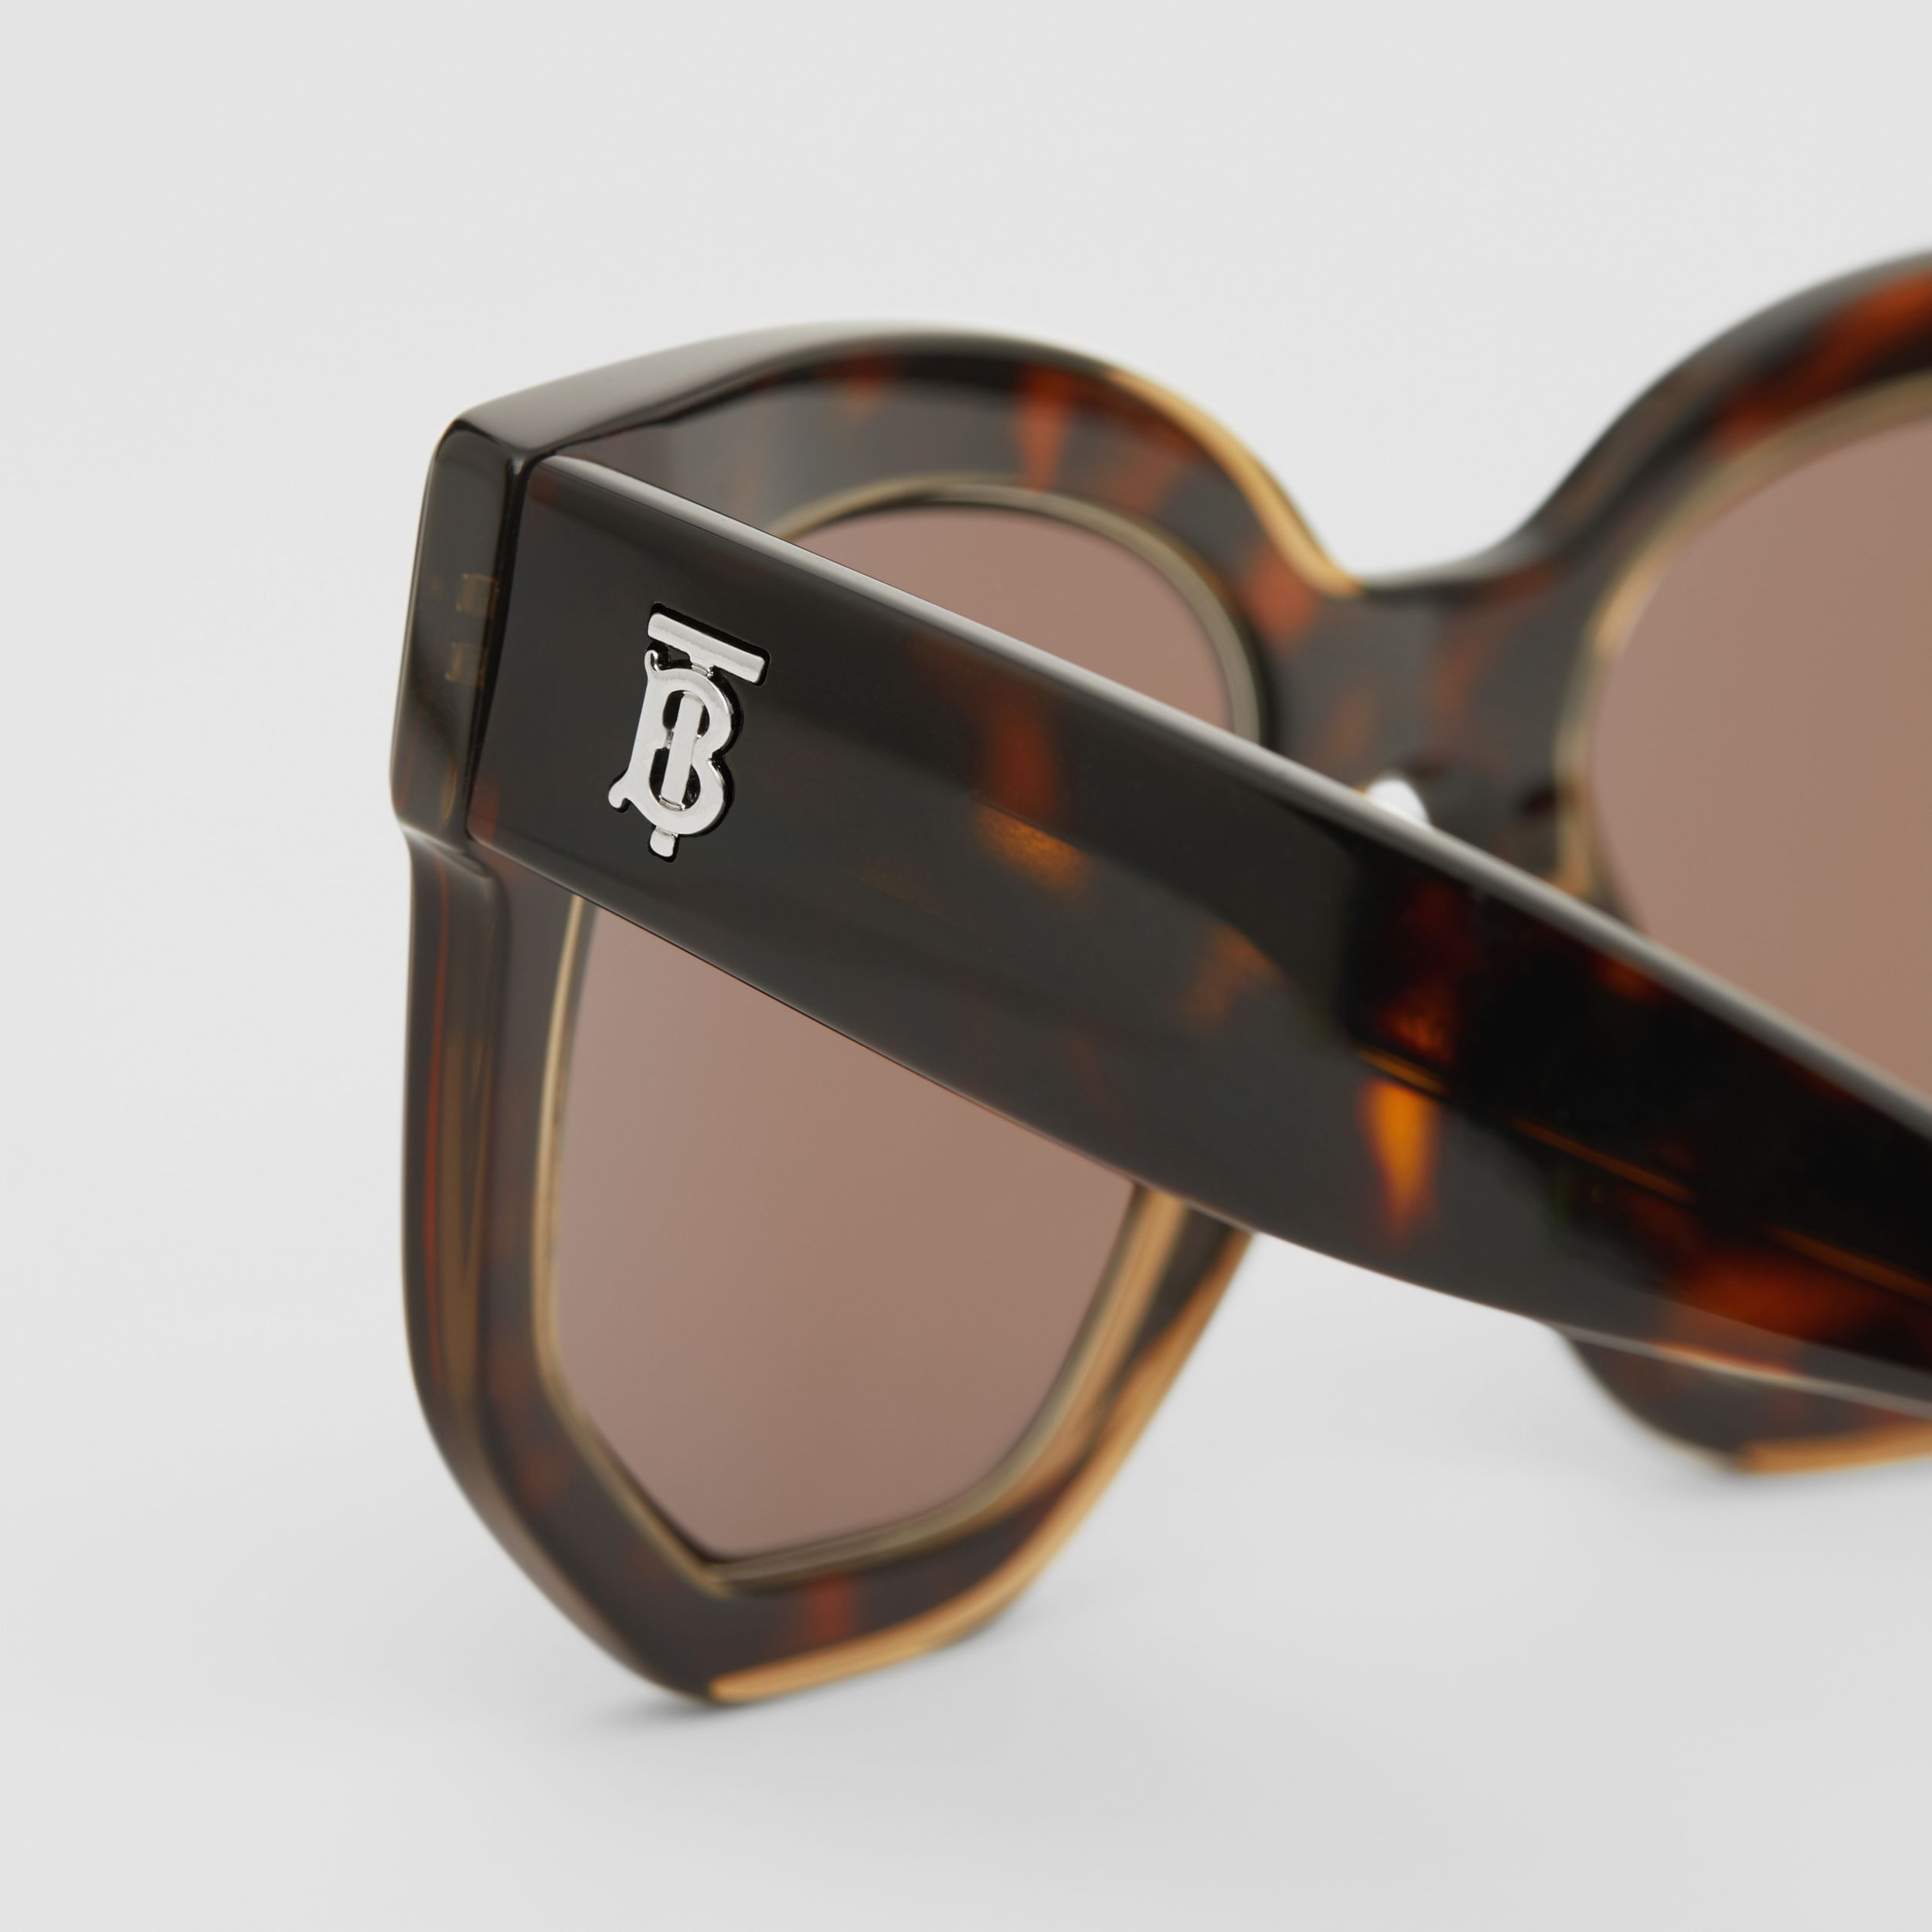 Geometric Frame Sunglasses in Tortoiseshell | Burberry - 2